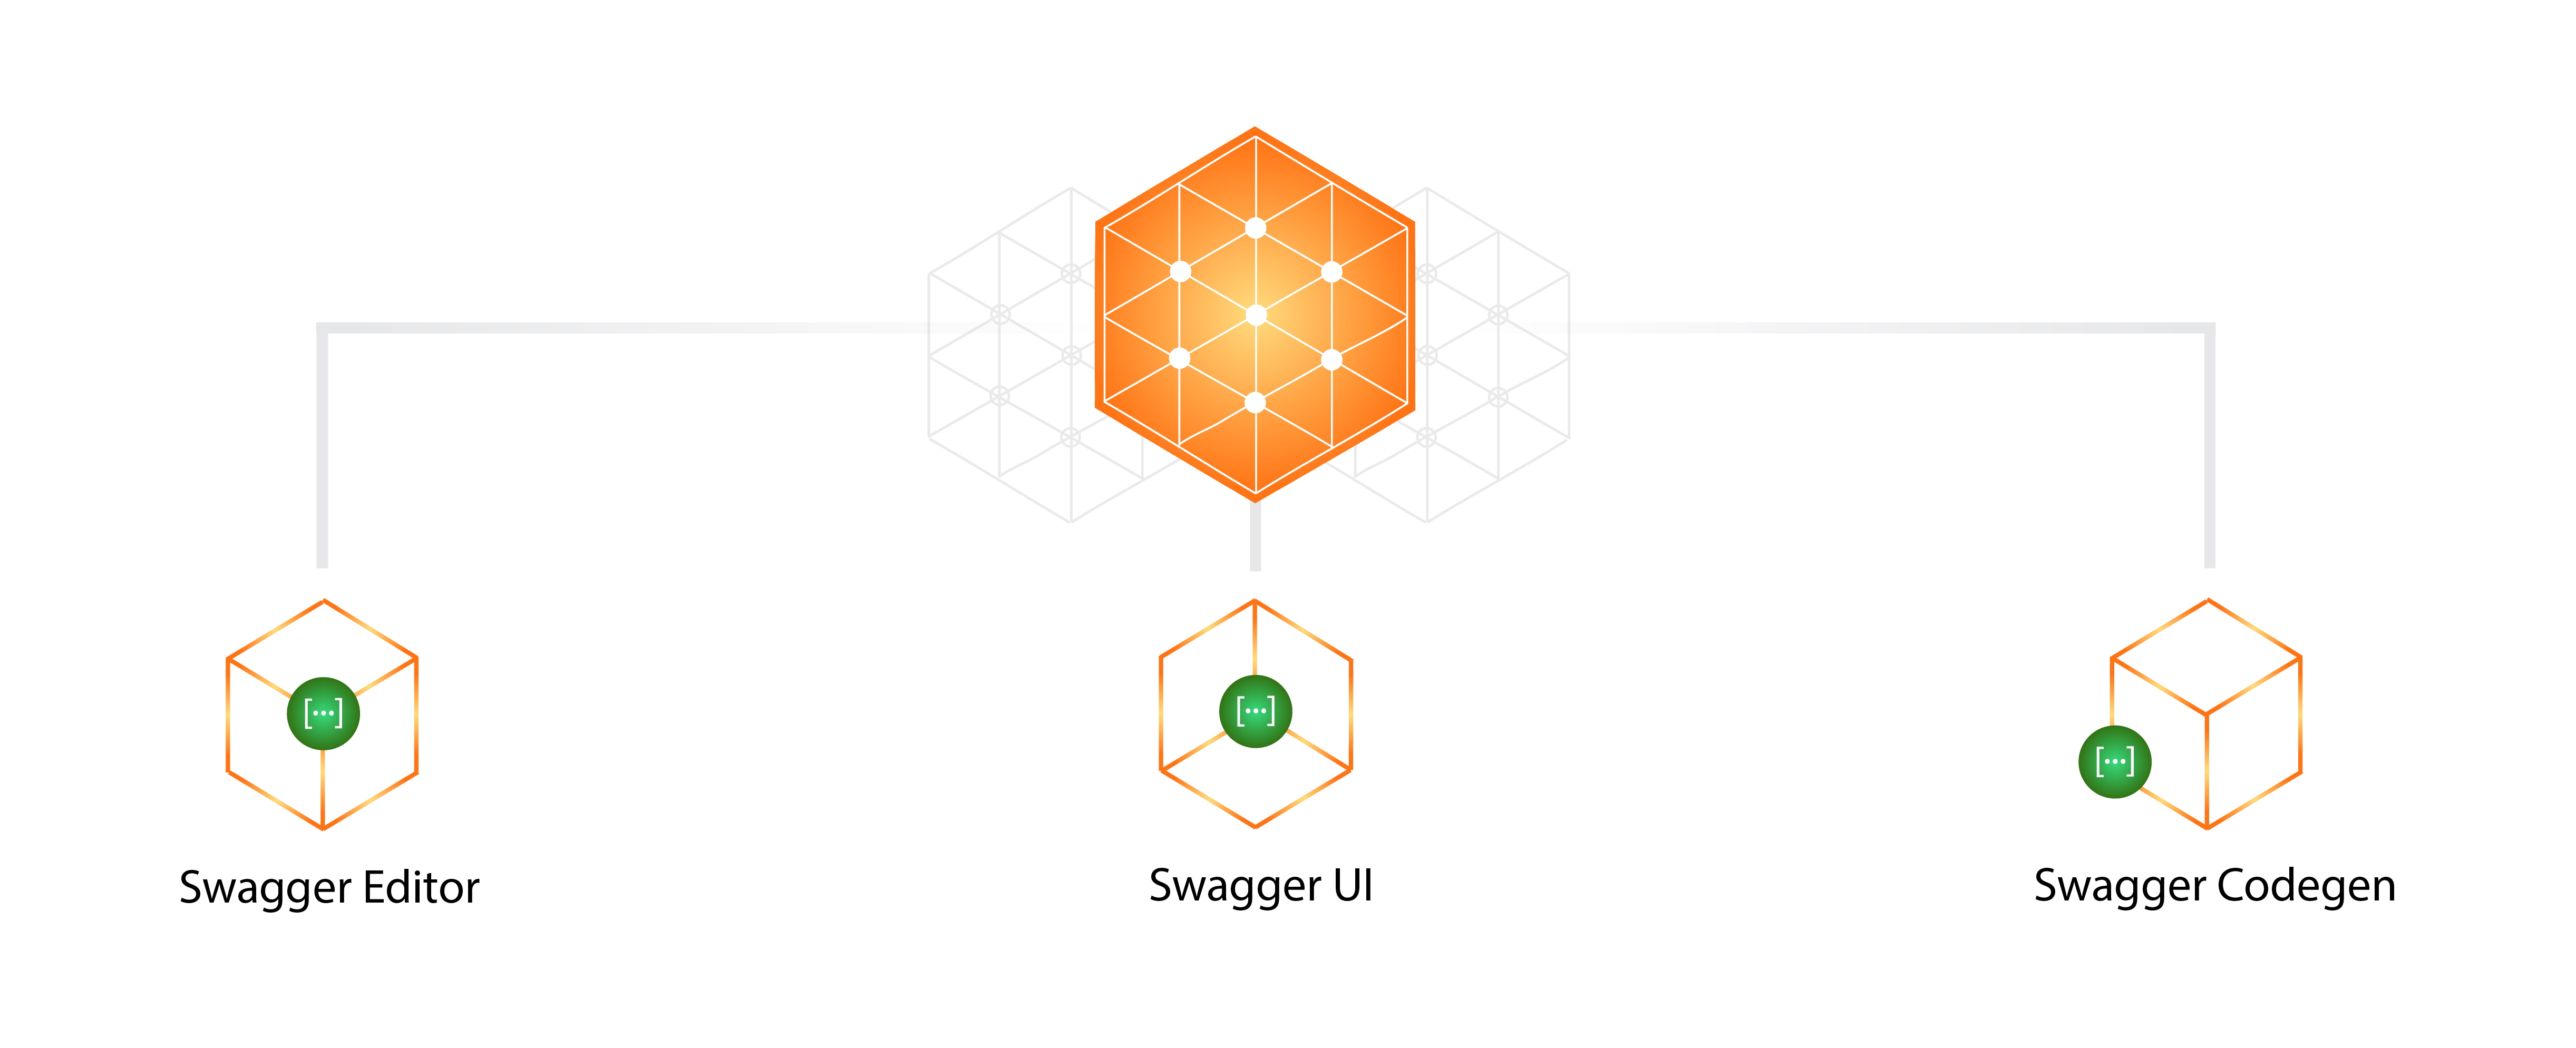 Swagger tools: Swagger Editor, Swagger UI, and Swagger Codegen